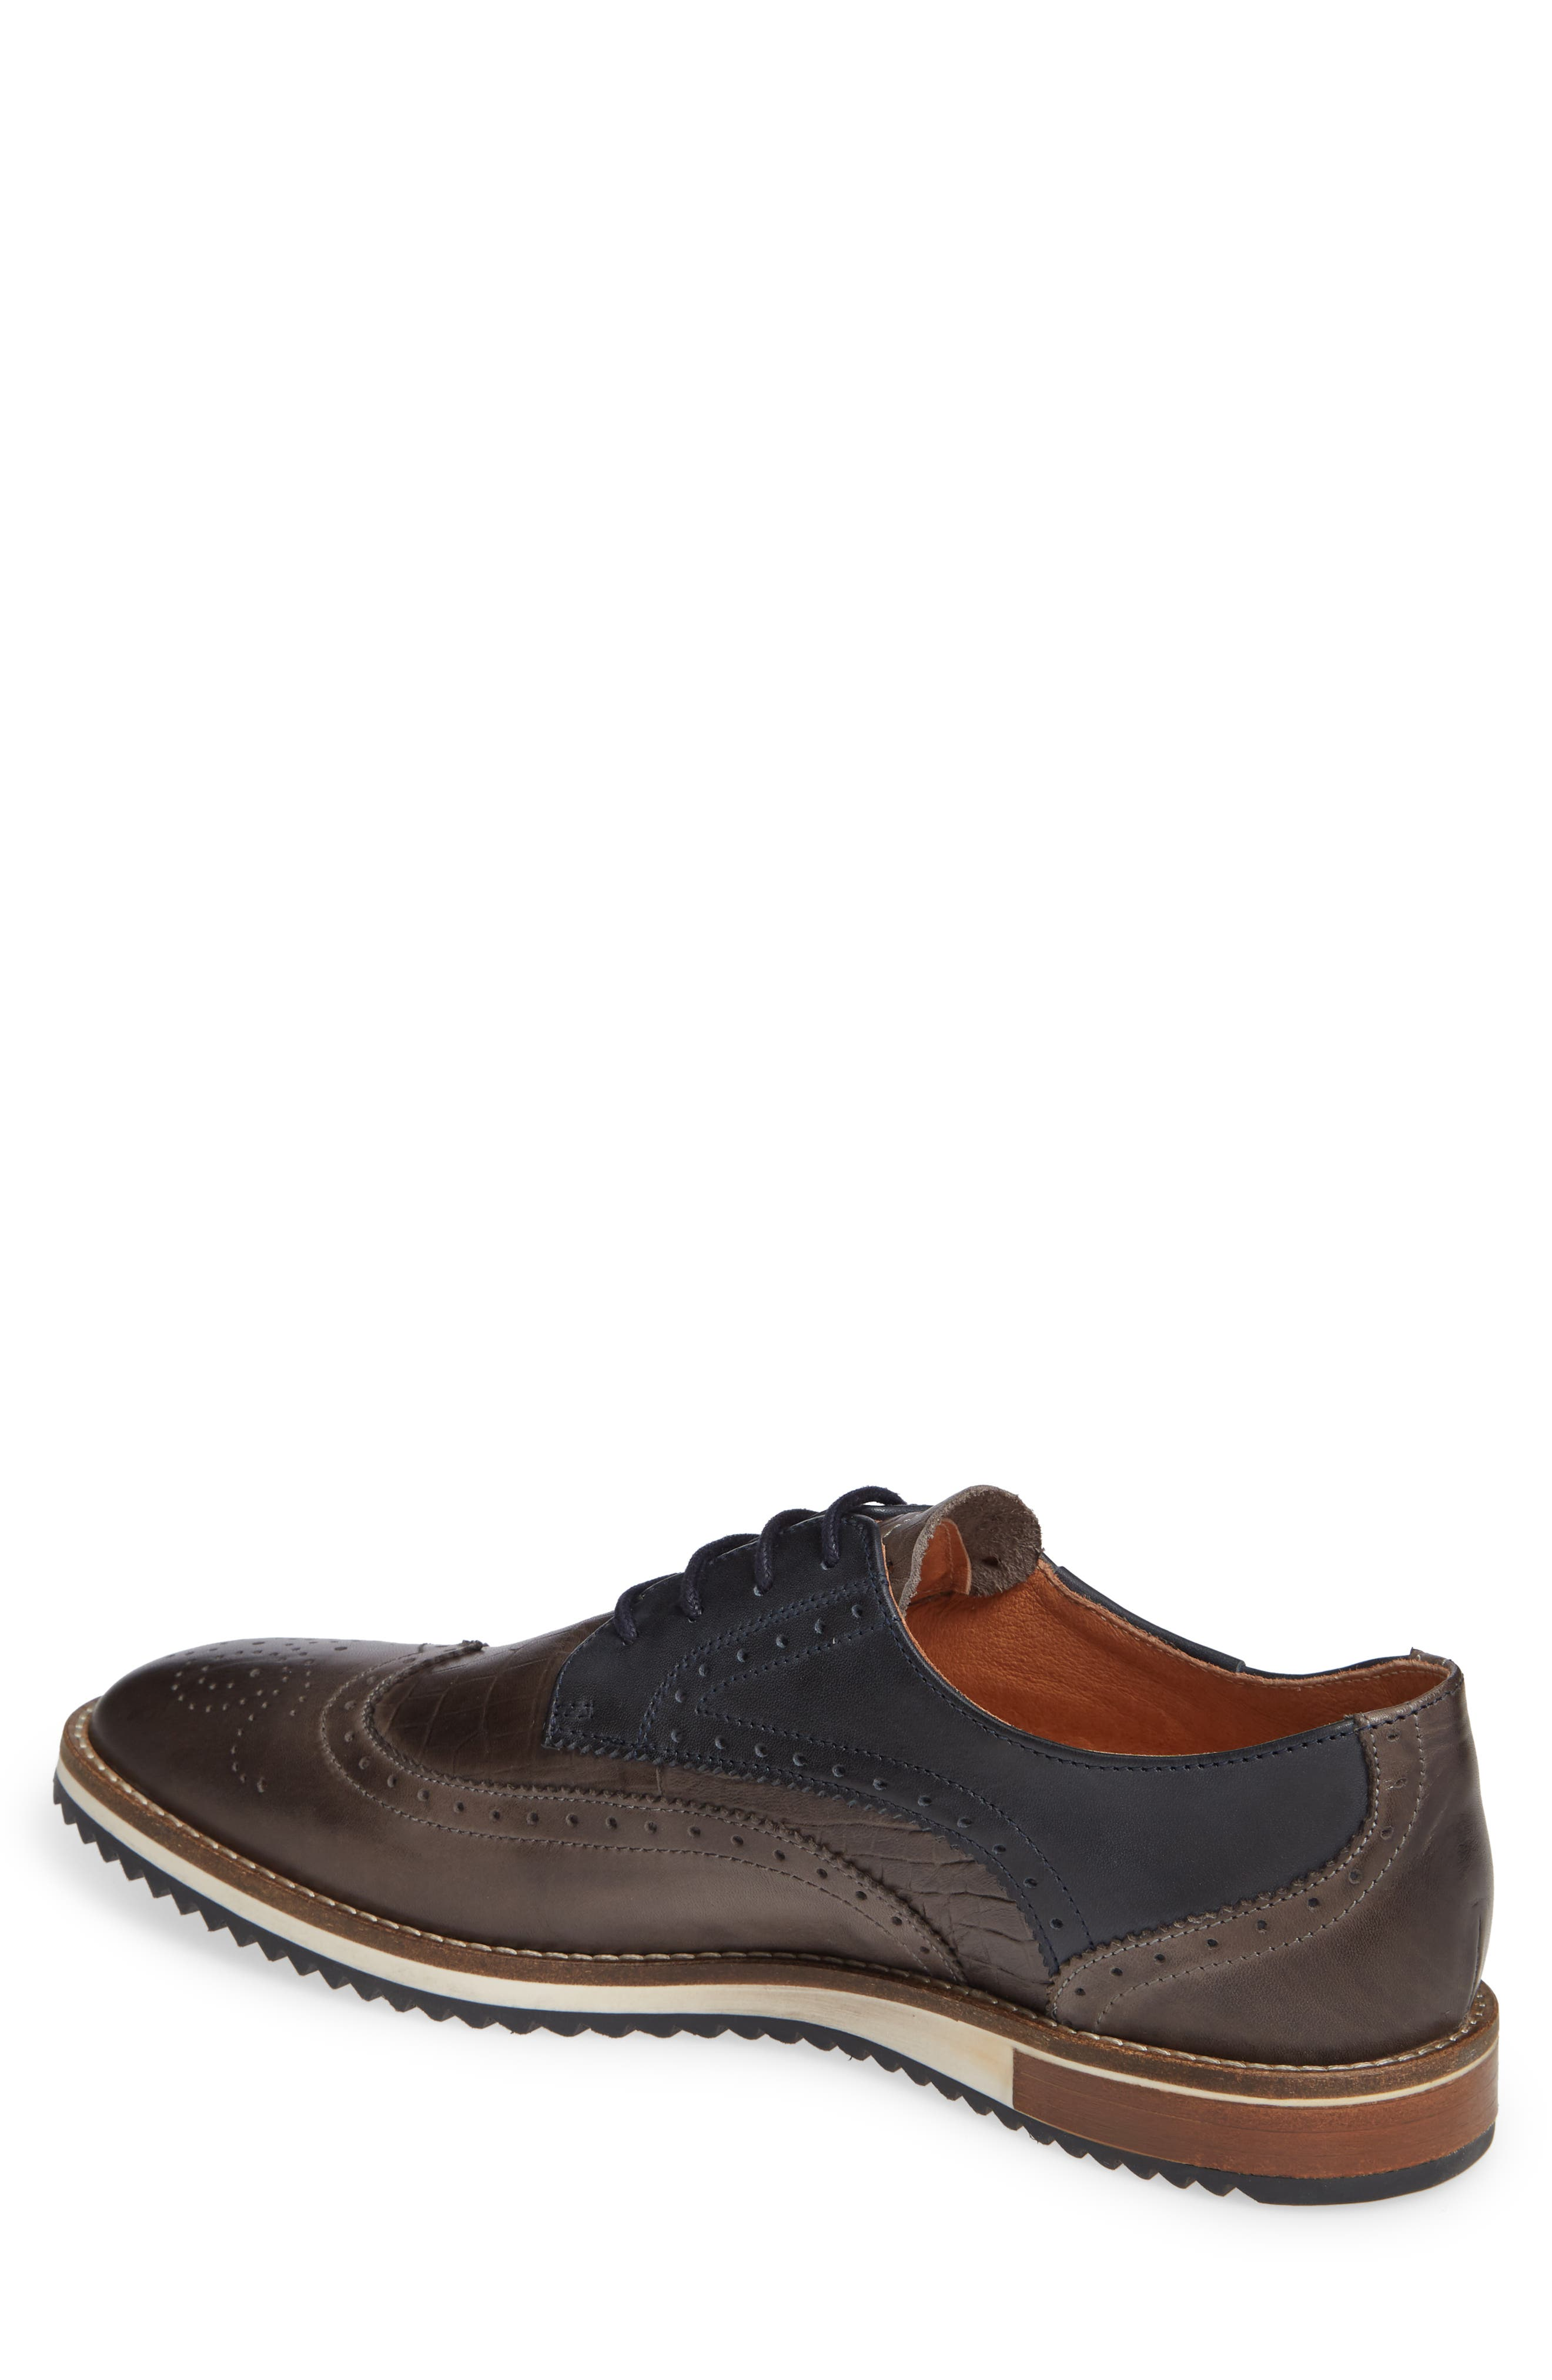 Pulsano Textured Wingtip,                             Alternate thumbnail 2, color,                             ANTHRACITE